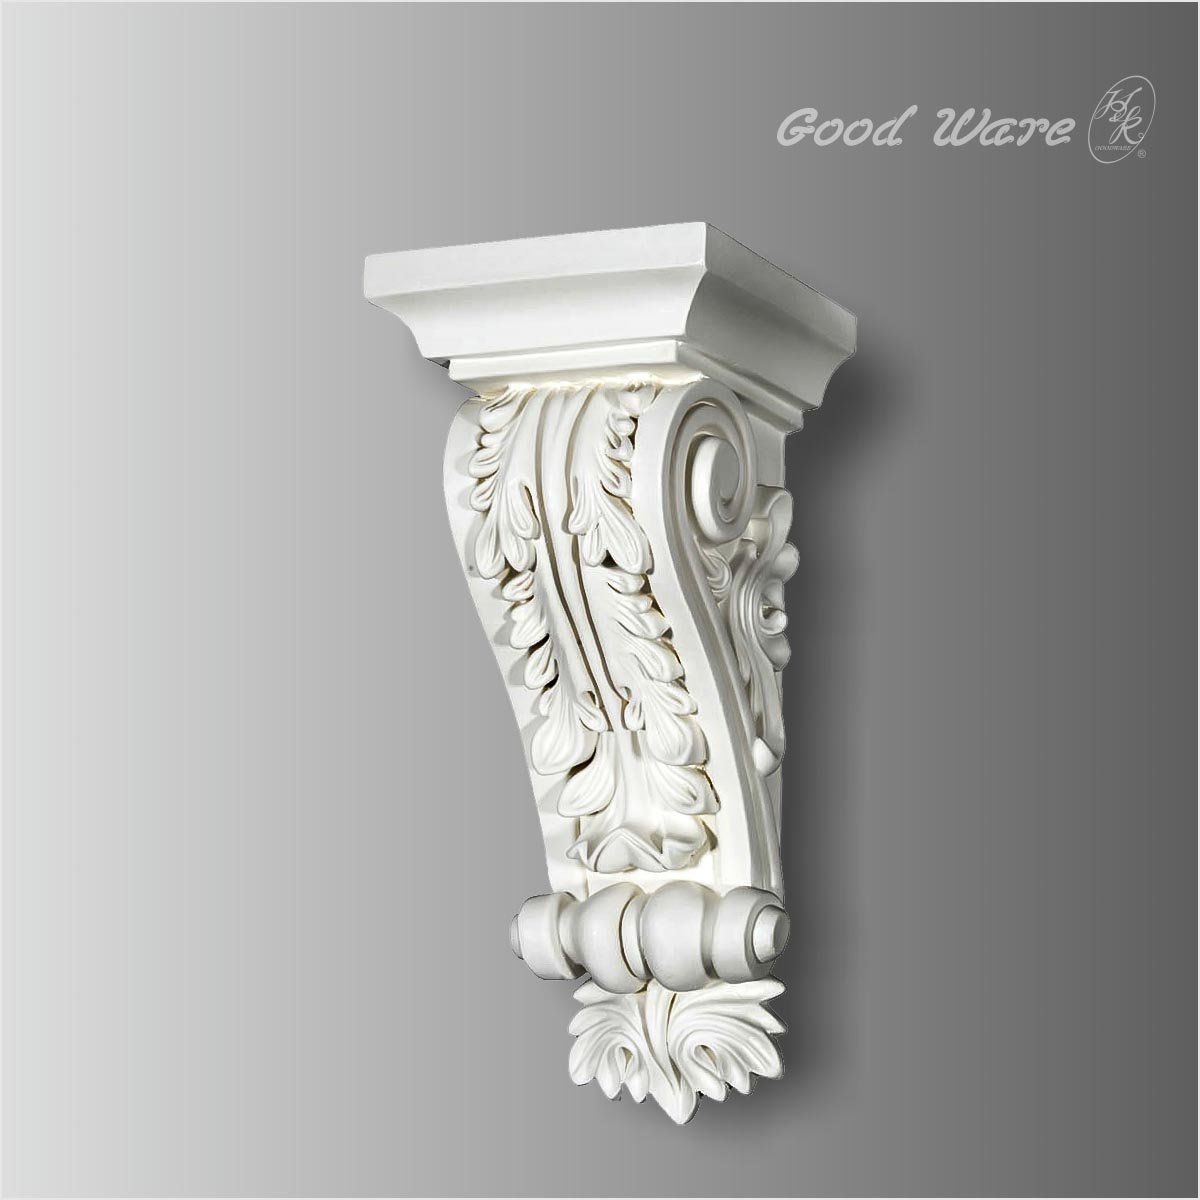 Decorative acanthus leaves polyurethane corbel